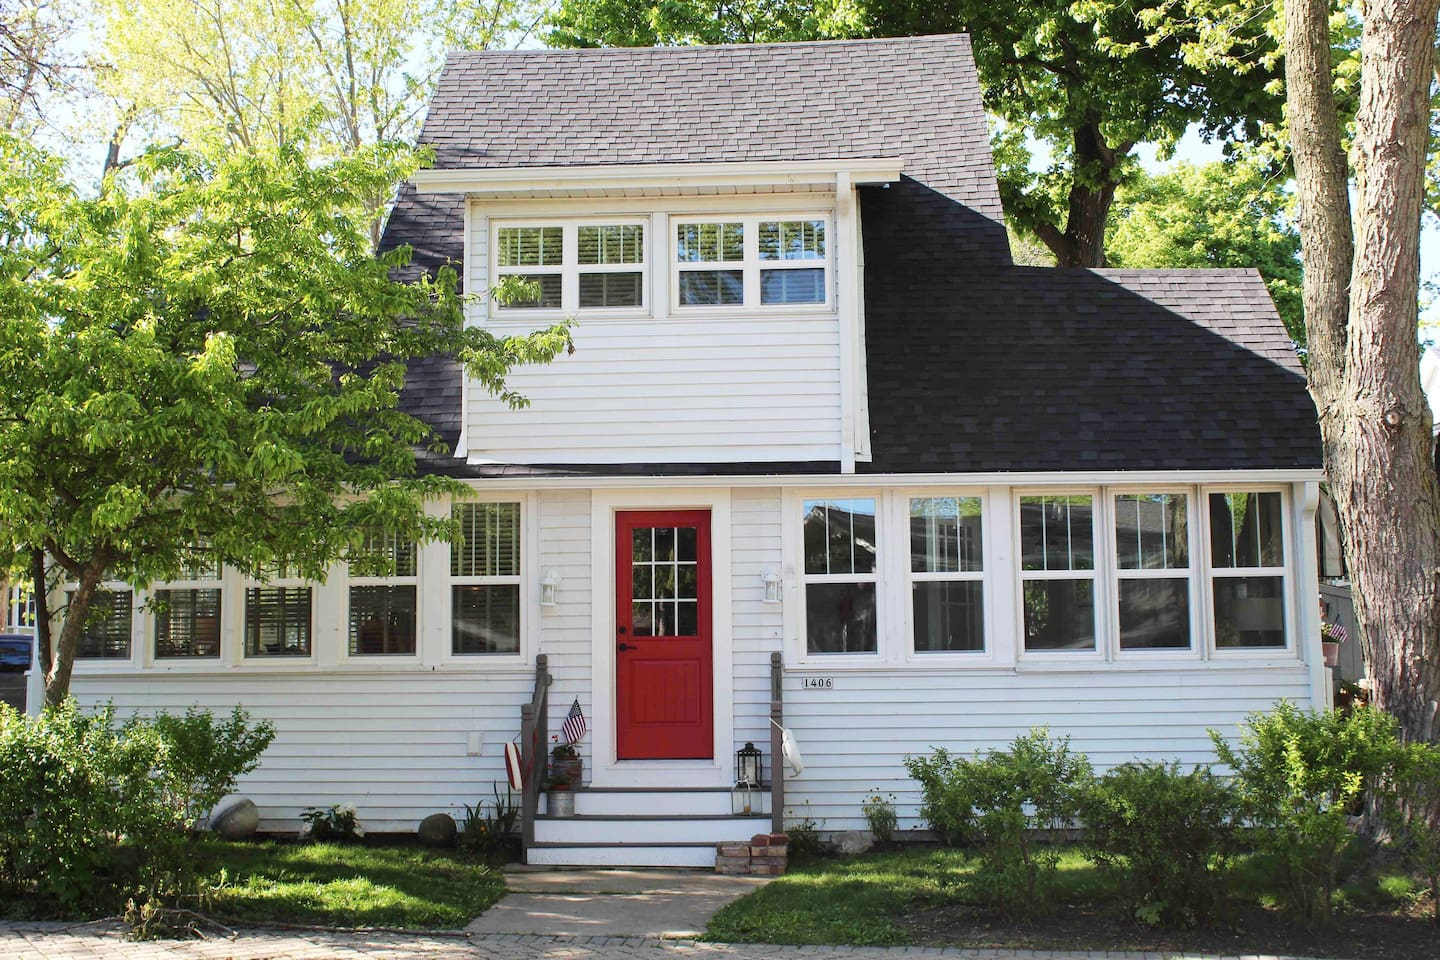 The front of the newly renovated cottage on Indian Trail in the infamous assembly park! This cottage is the perfect destination for family gatherings, wedding parties or a weekend getaway!